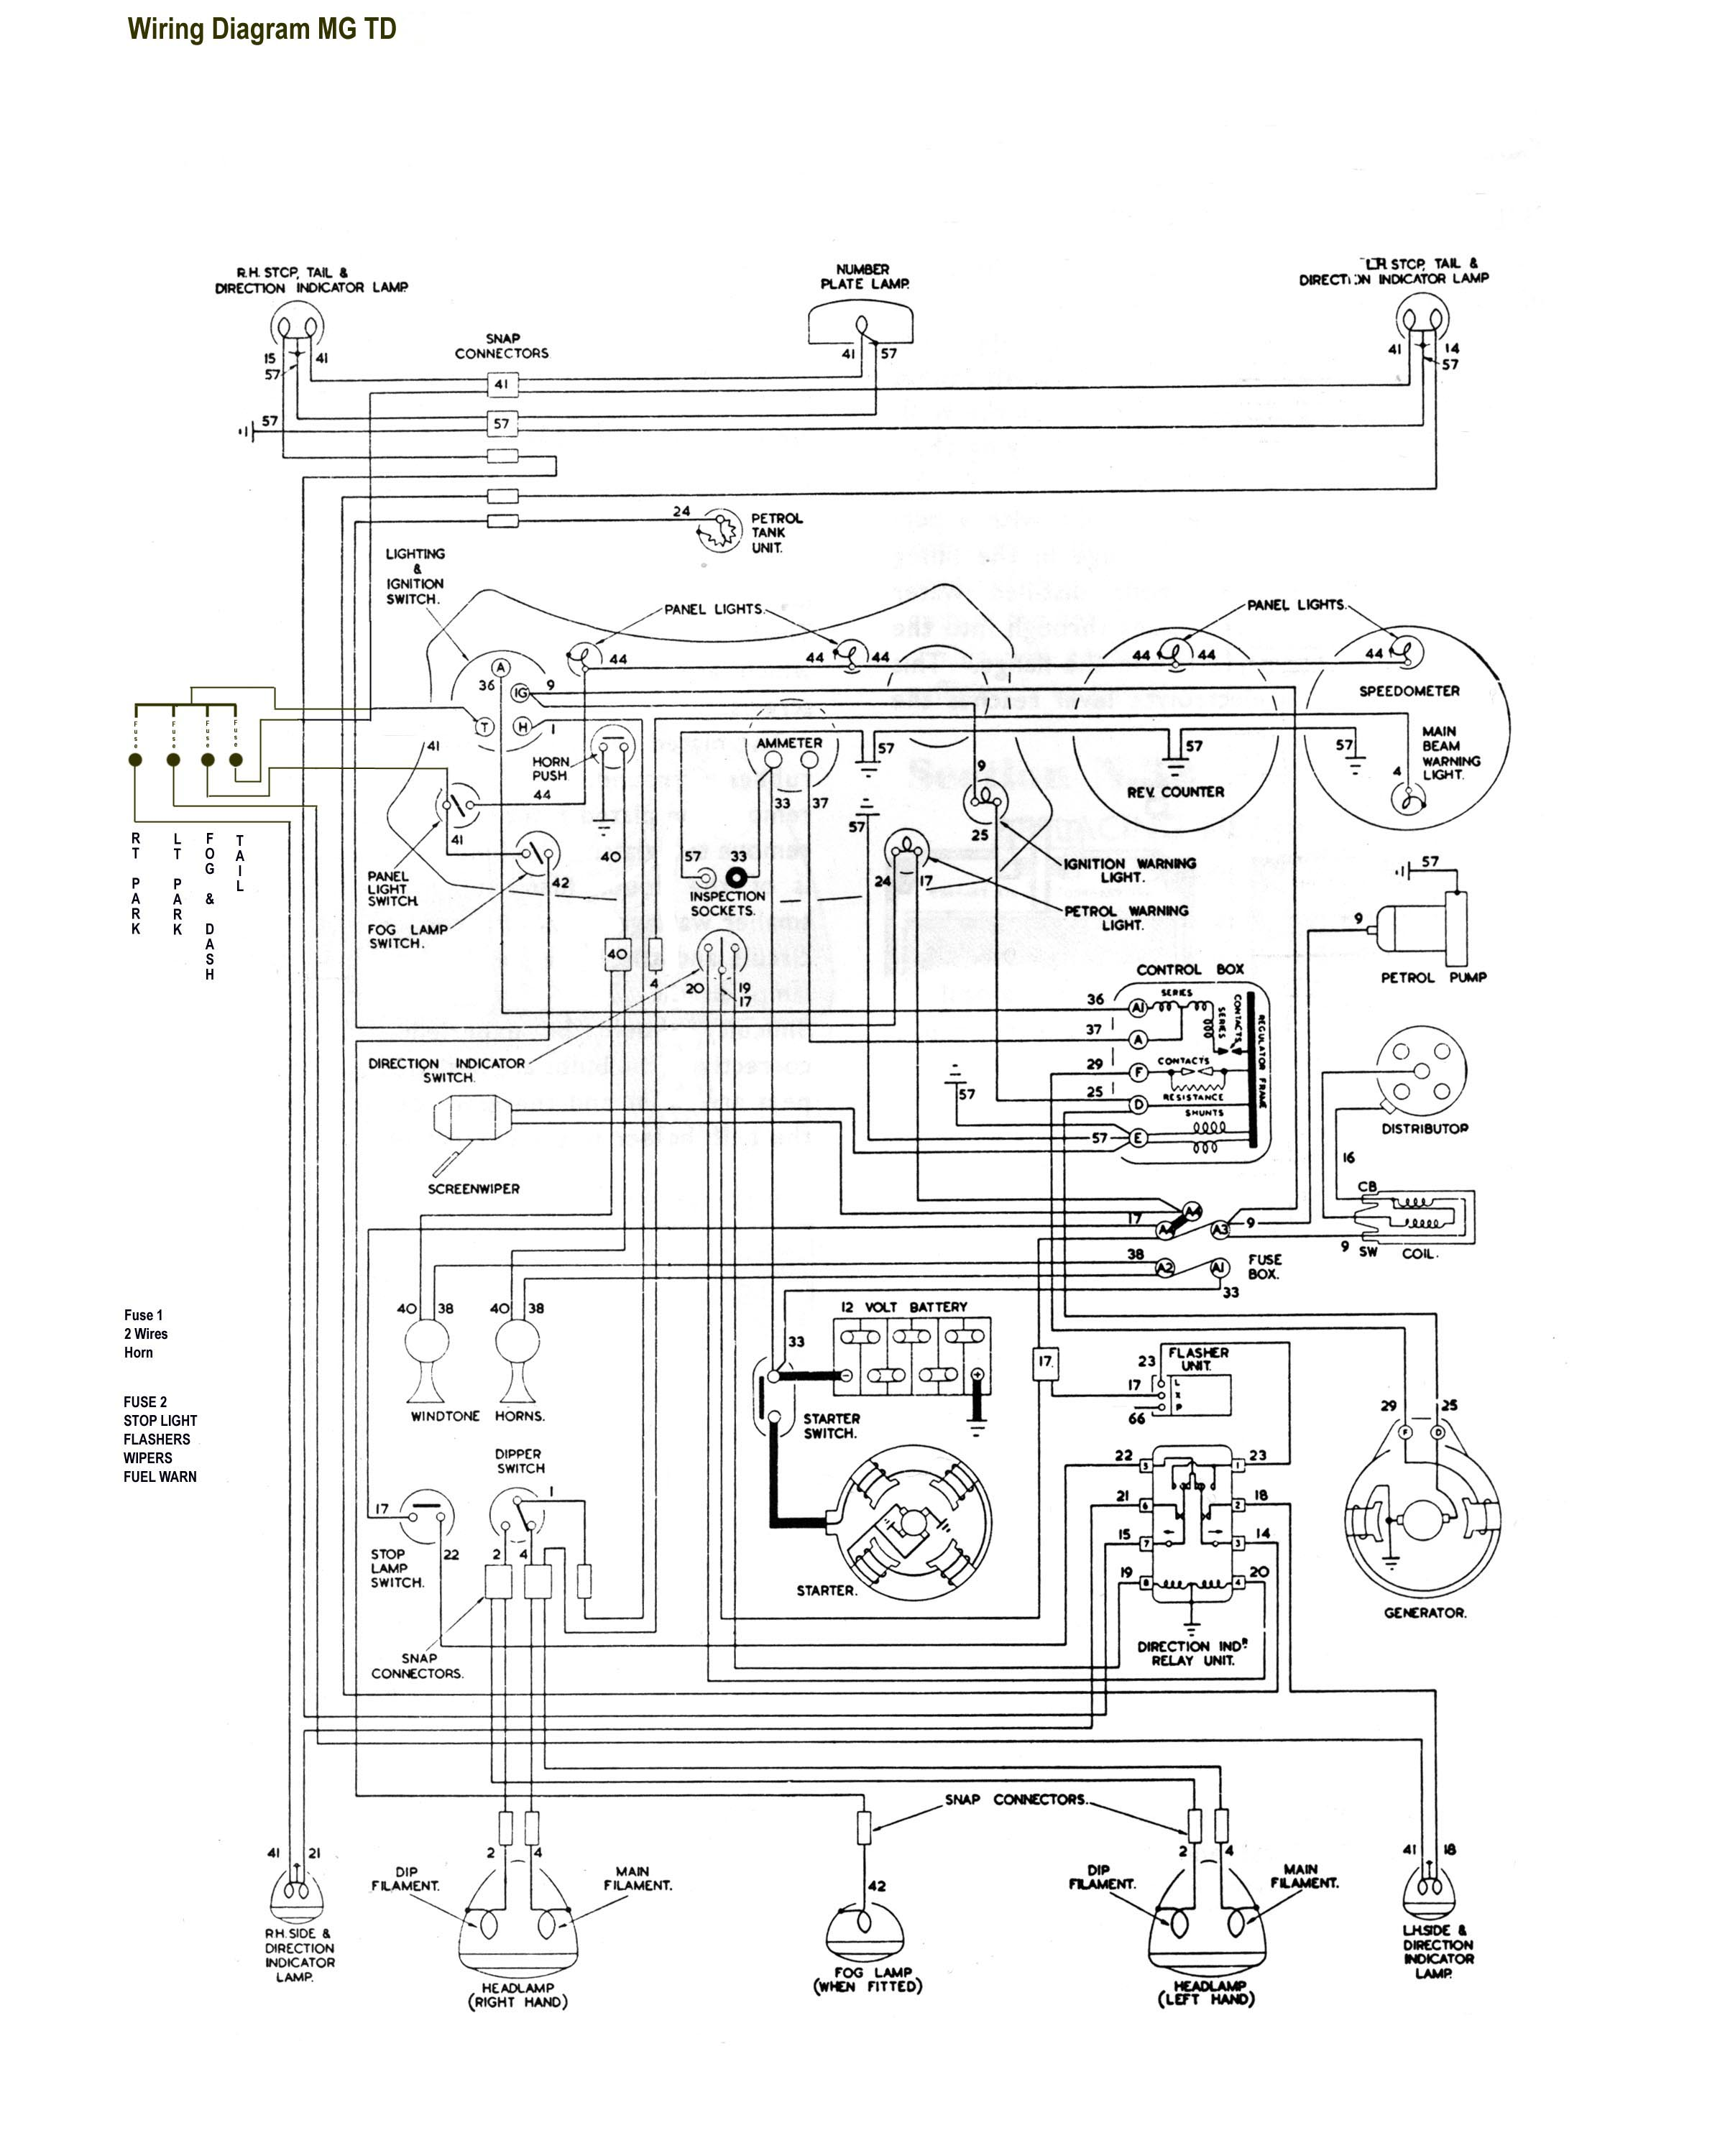 1978 mg midget wiring diagram